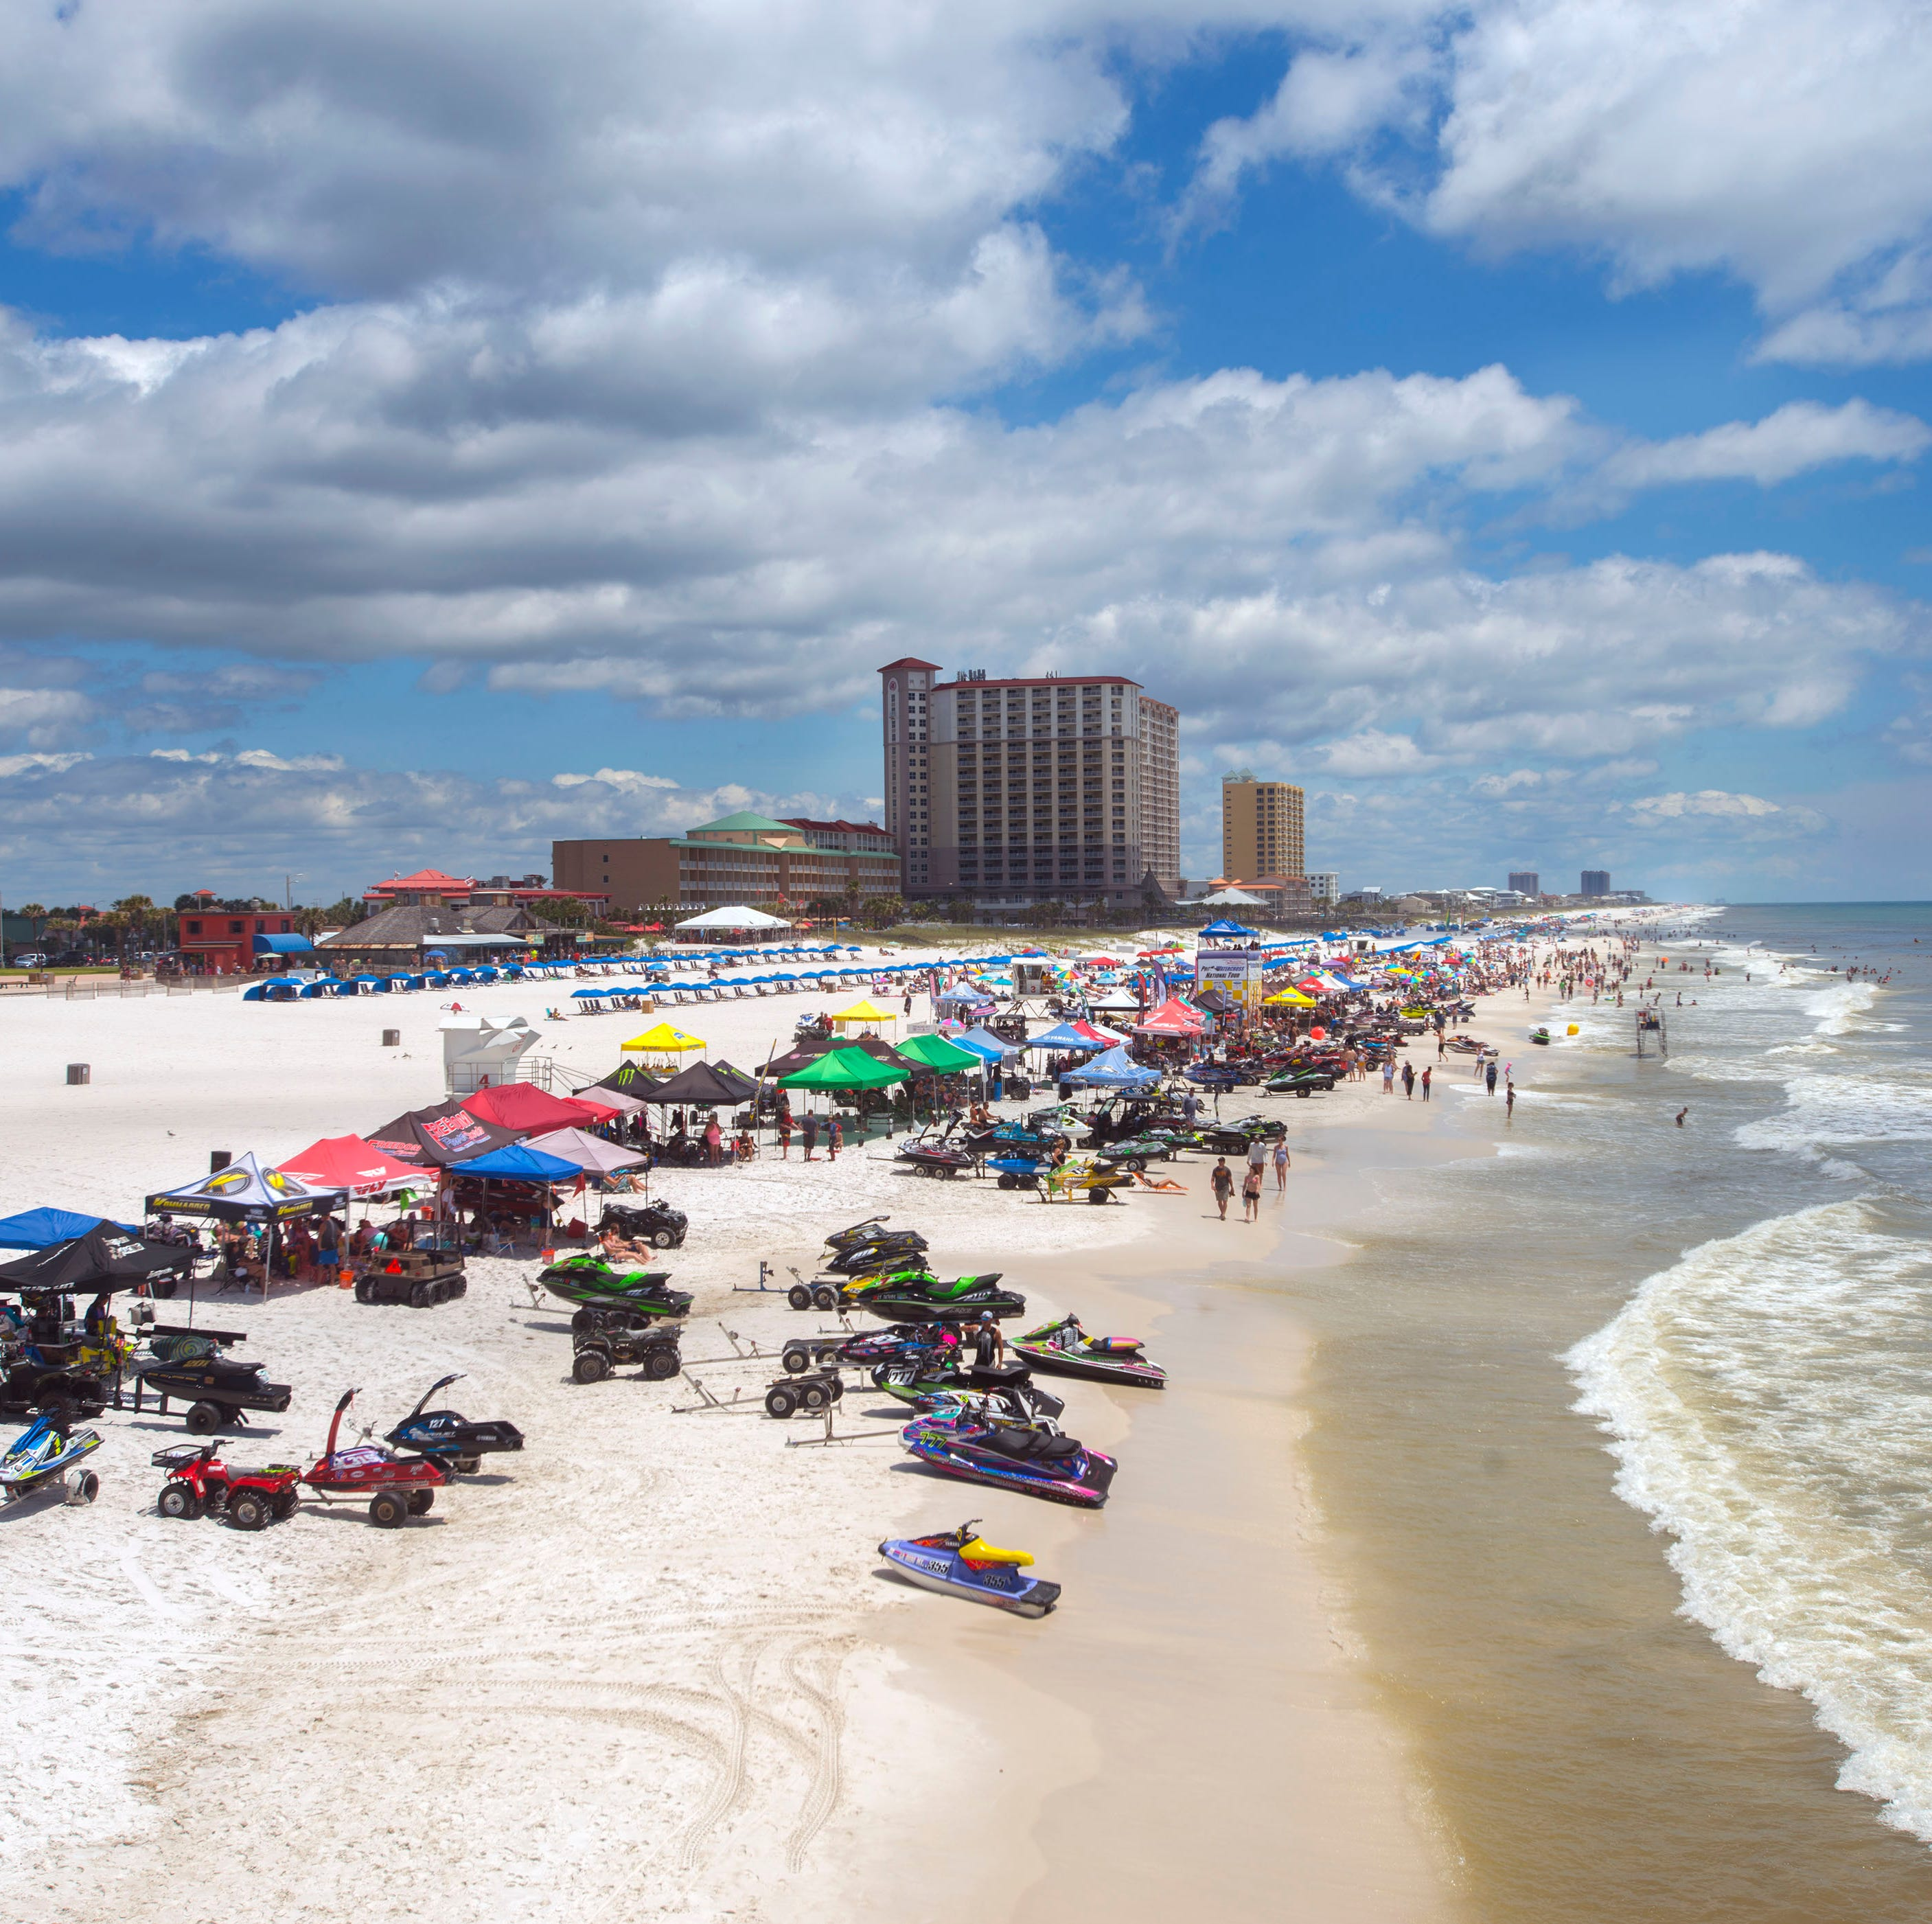 Voters endorsed Pensacola Beach conservation, but group says beach still unprotected